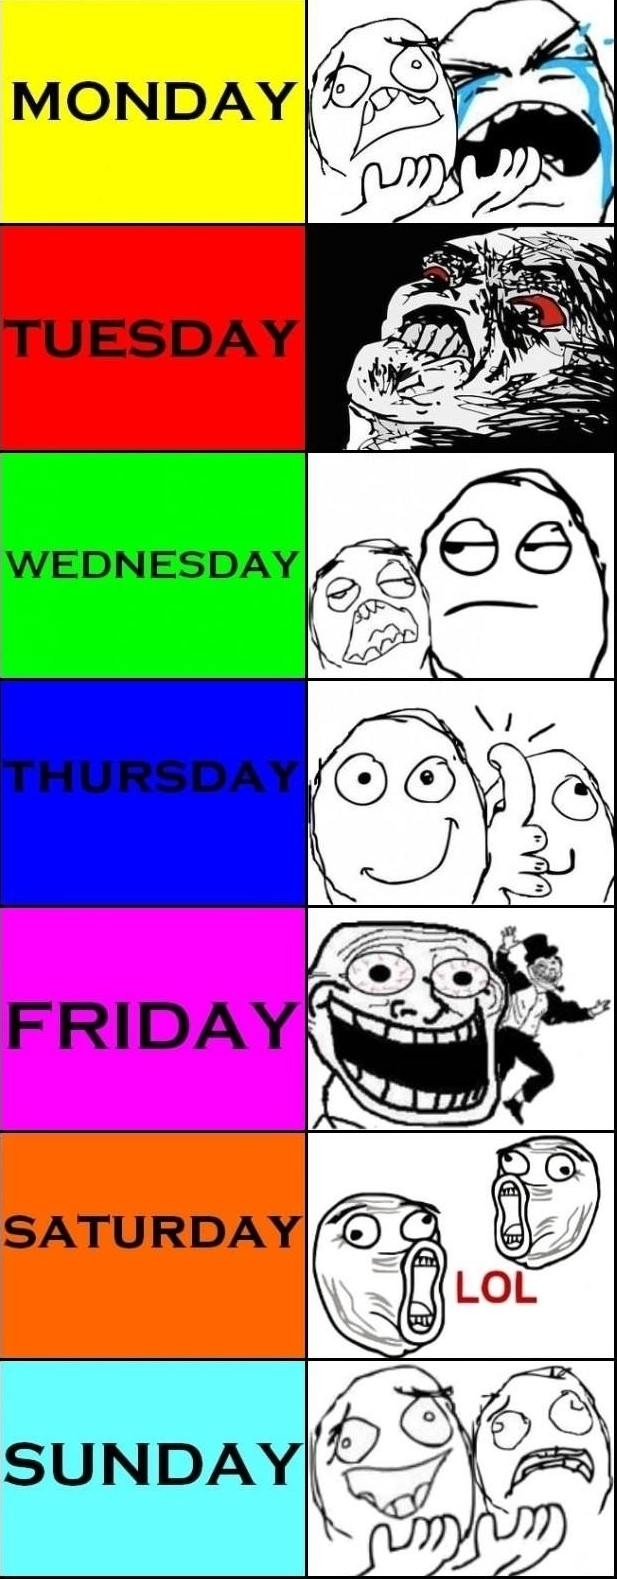 Days of the week Memes